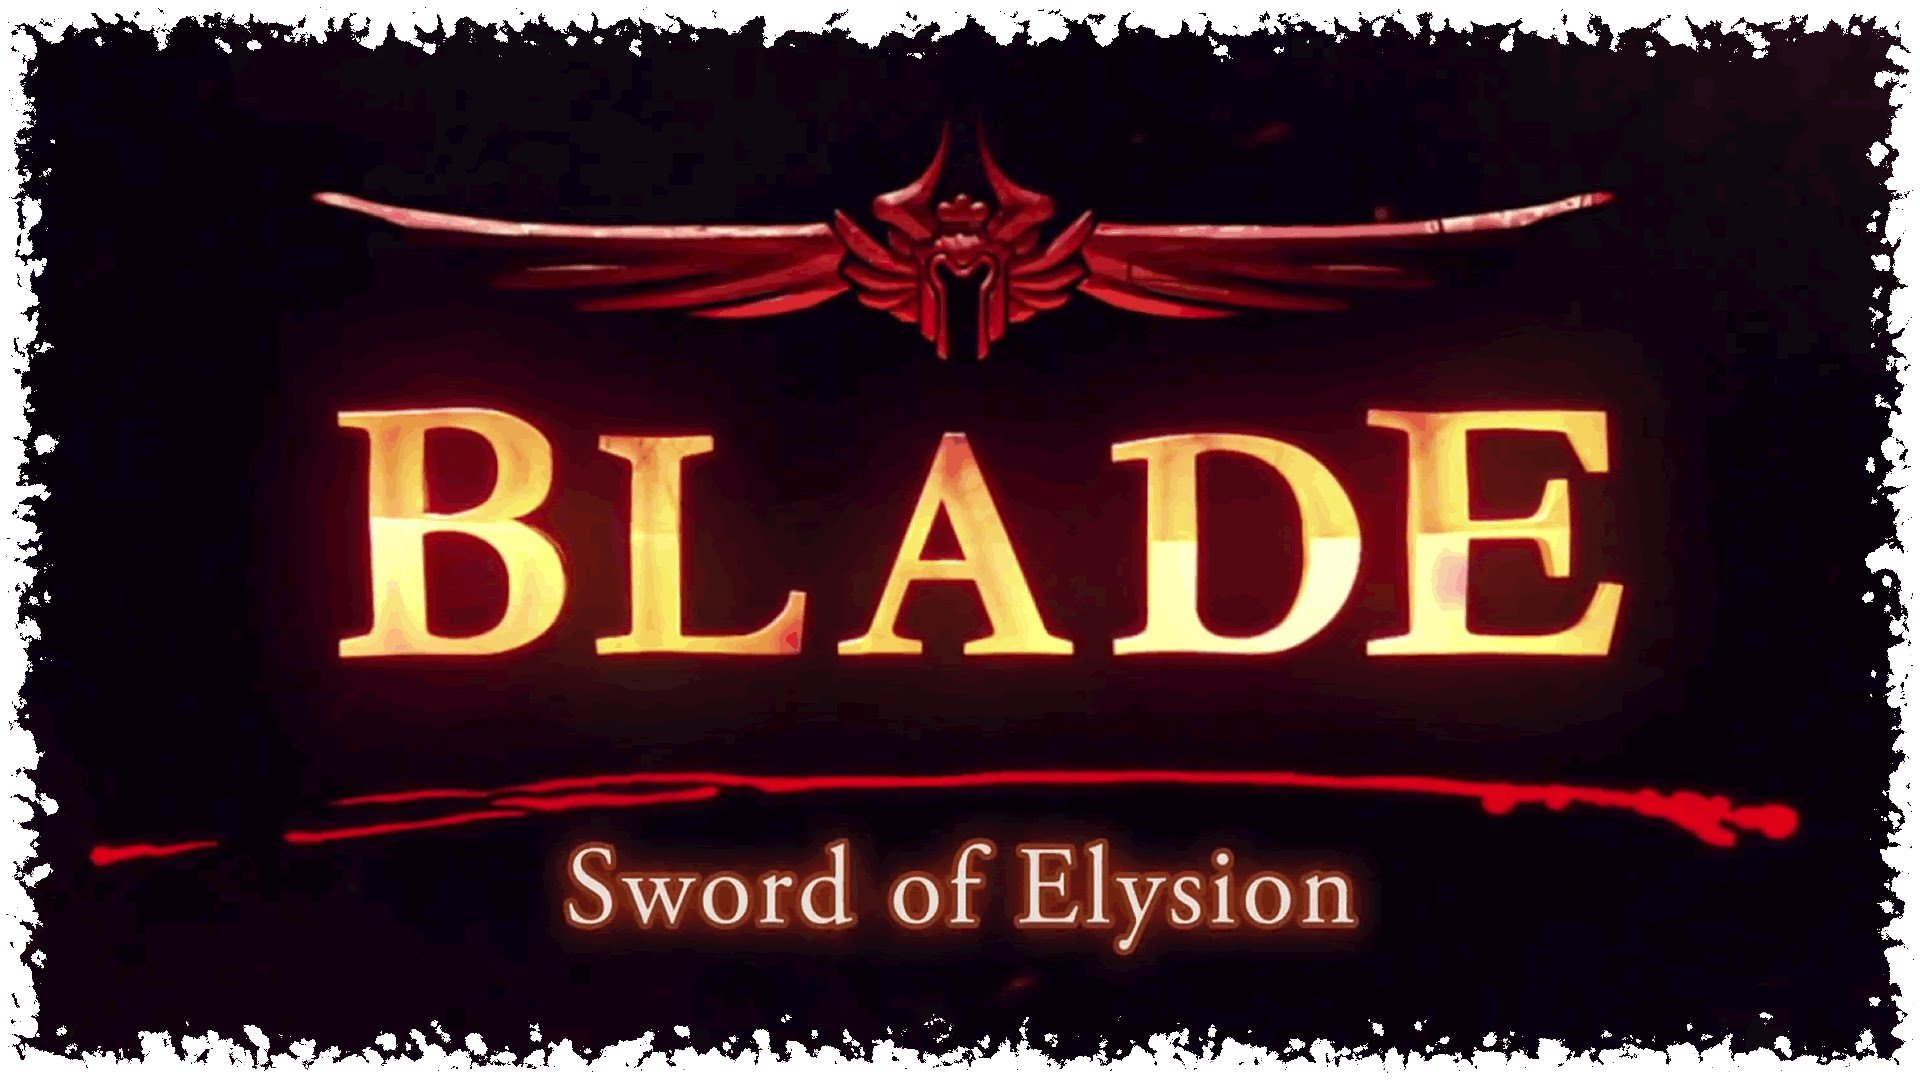 Blade Sword of Elysion Gaming Cypher